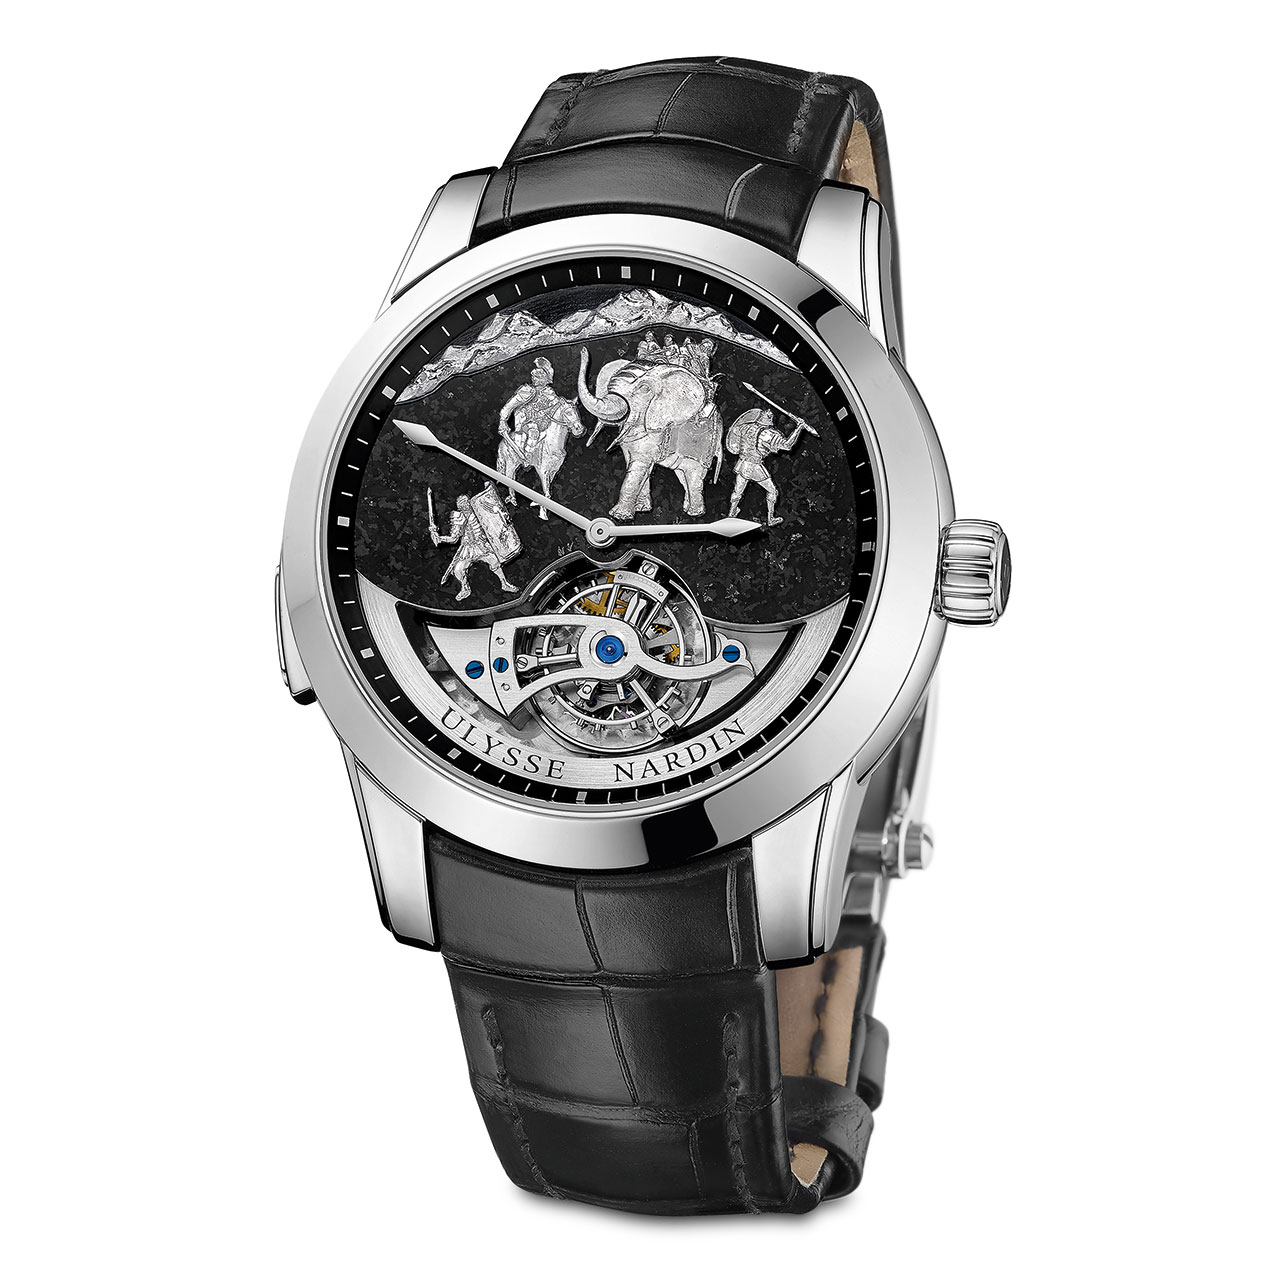 Ulysse Nardin Répétition Minutes Hannibal Westminster Carillon Tourbillon Jaquemarts Watch